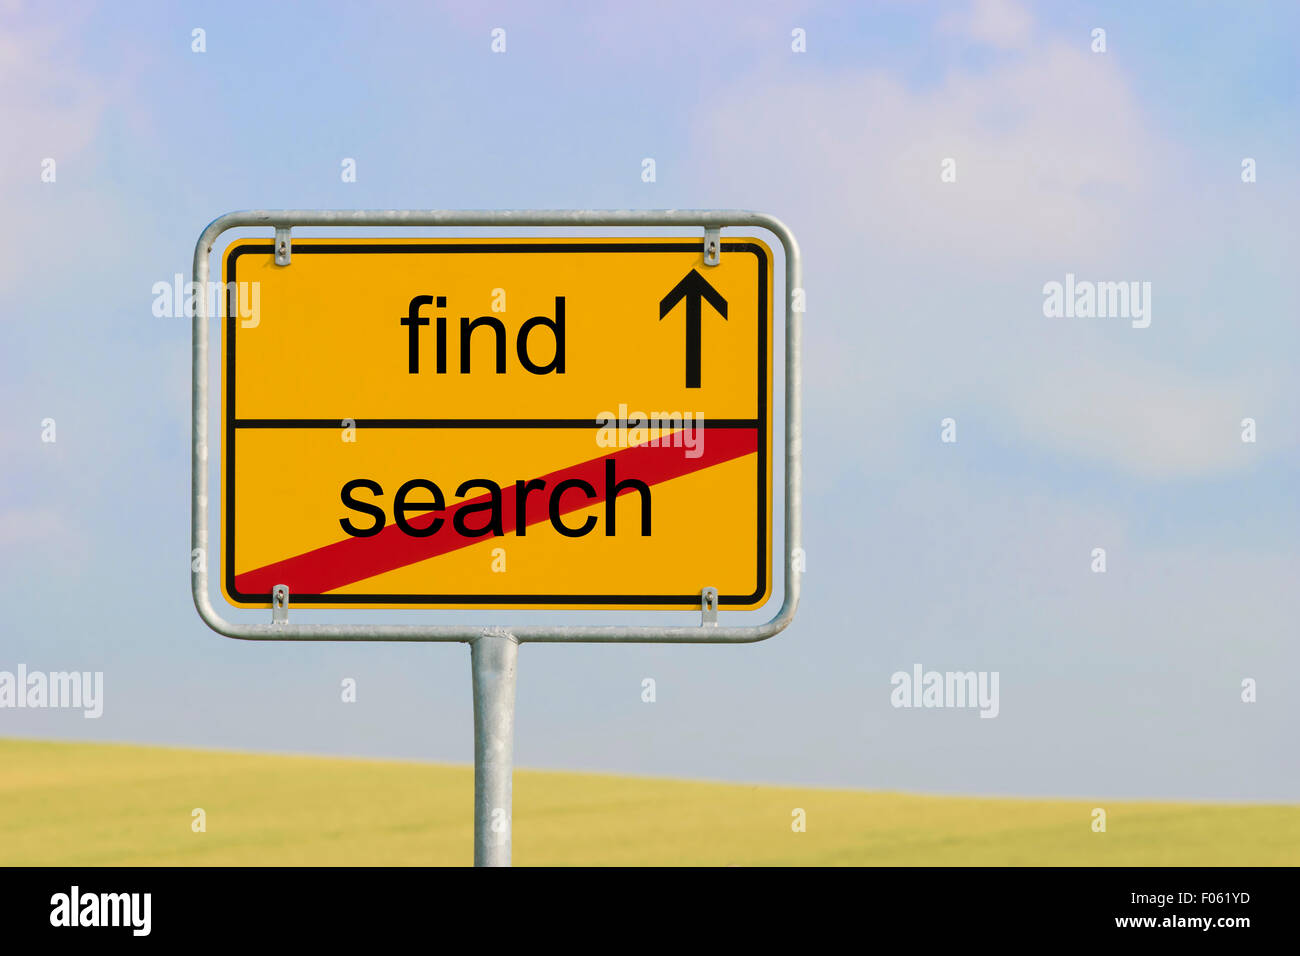 Yellow town sign with text 'find search' - Stock Image